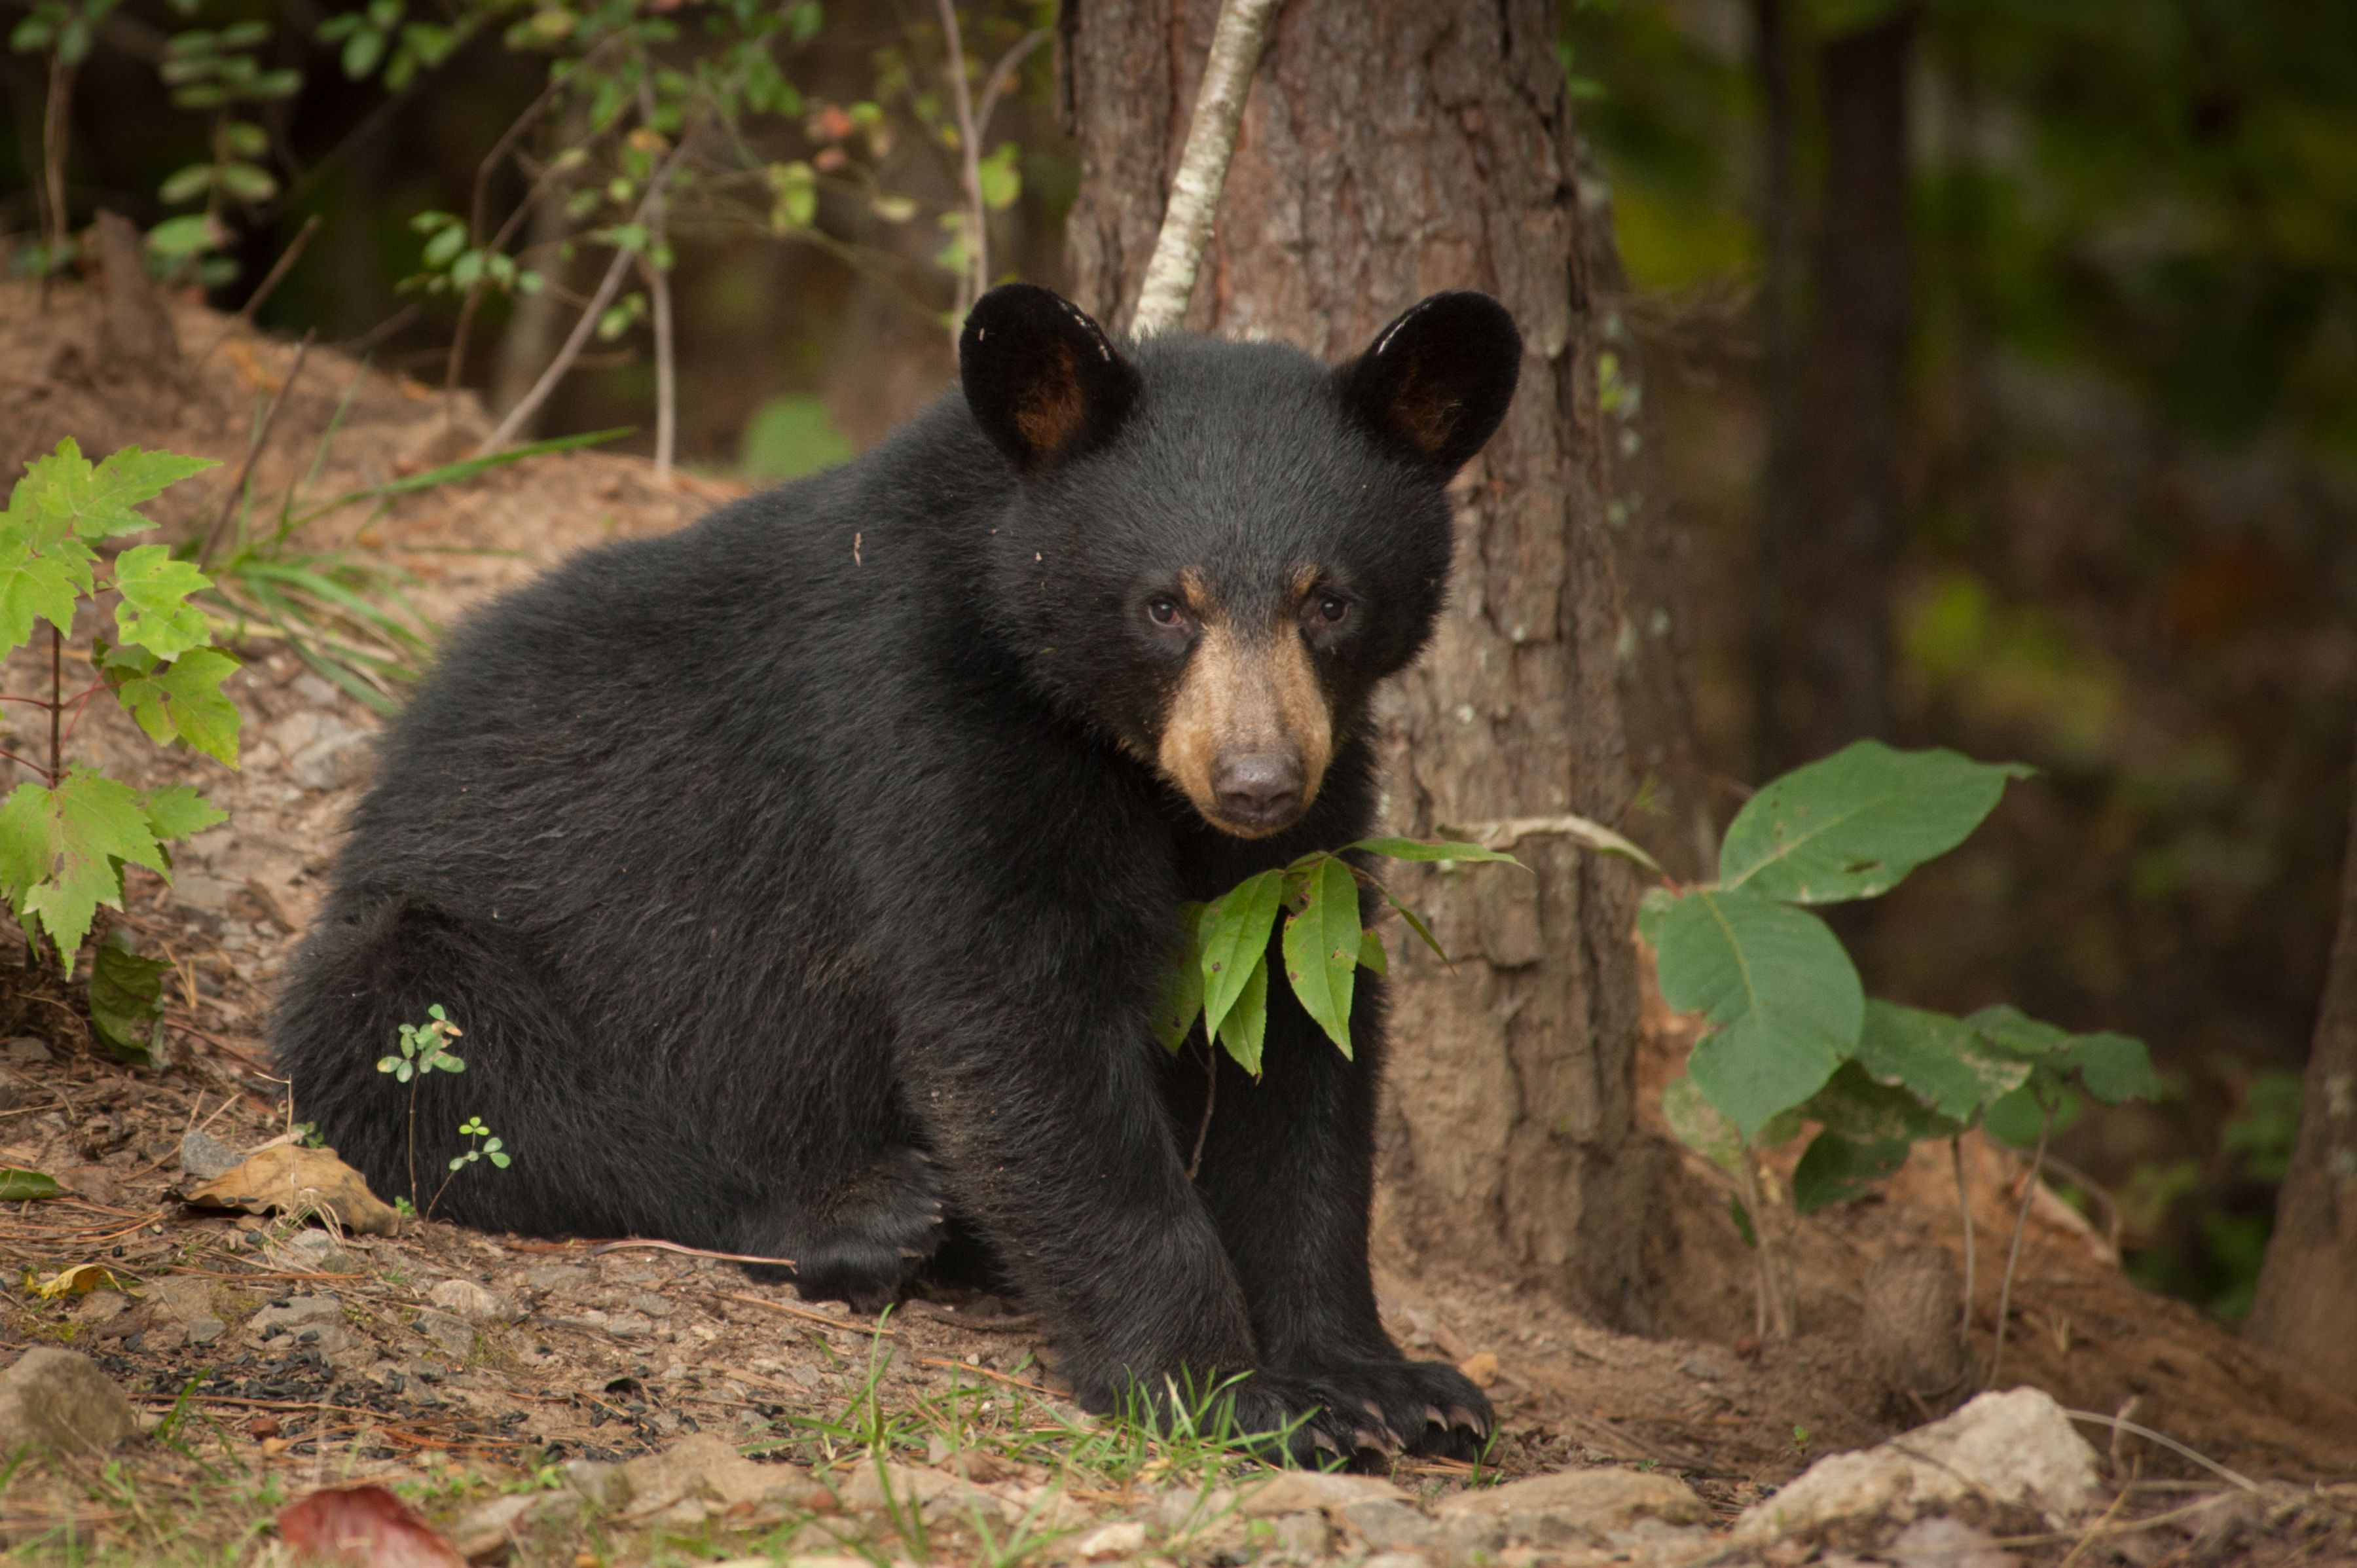 Frequently Asked Questions about Bears at Cades Cove Visitor Center